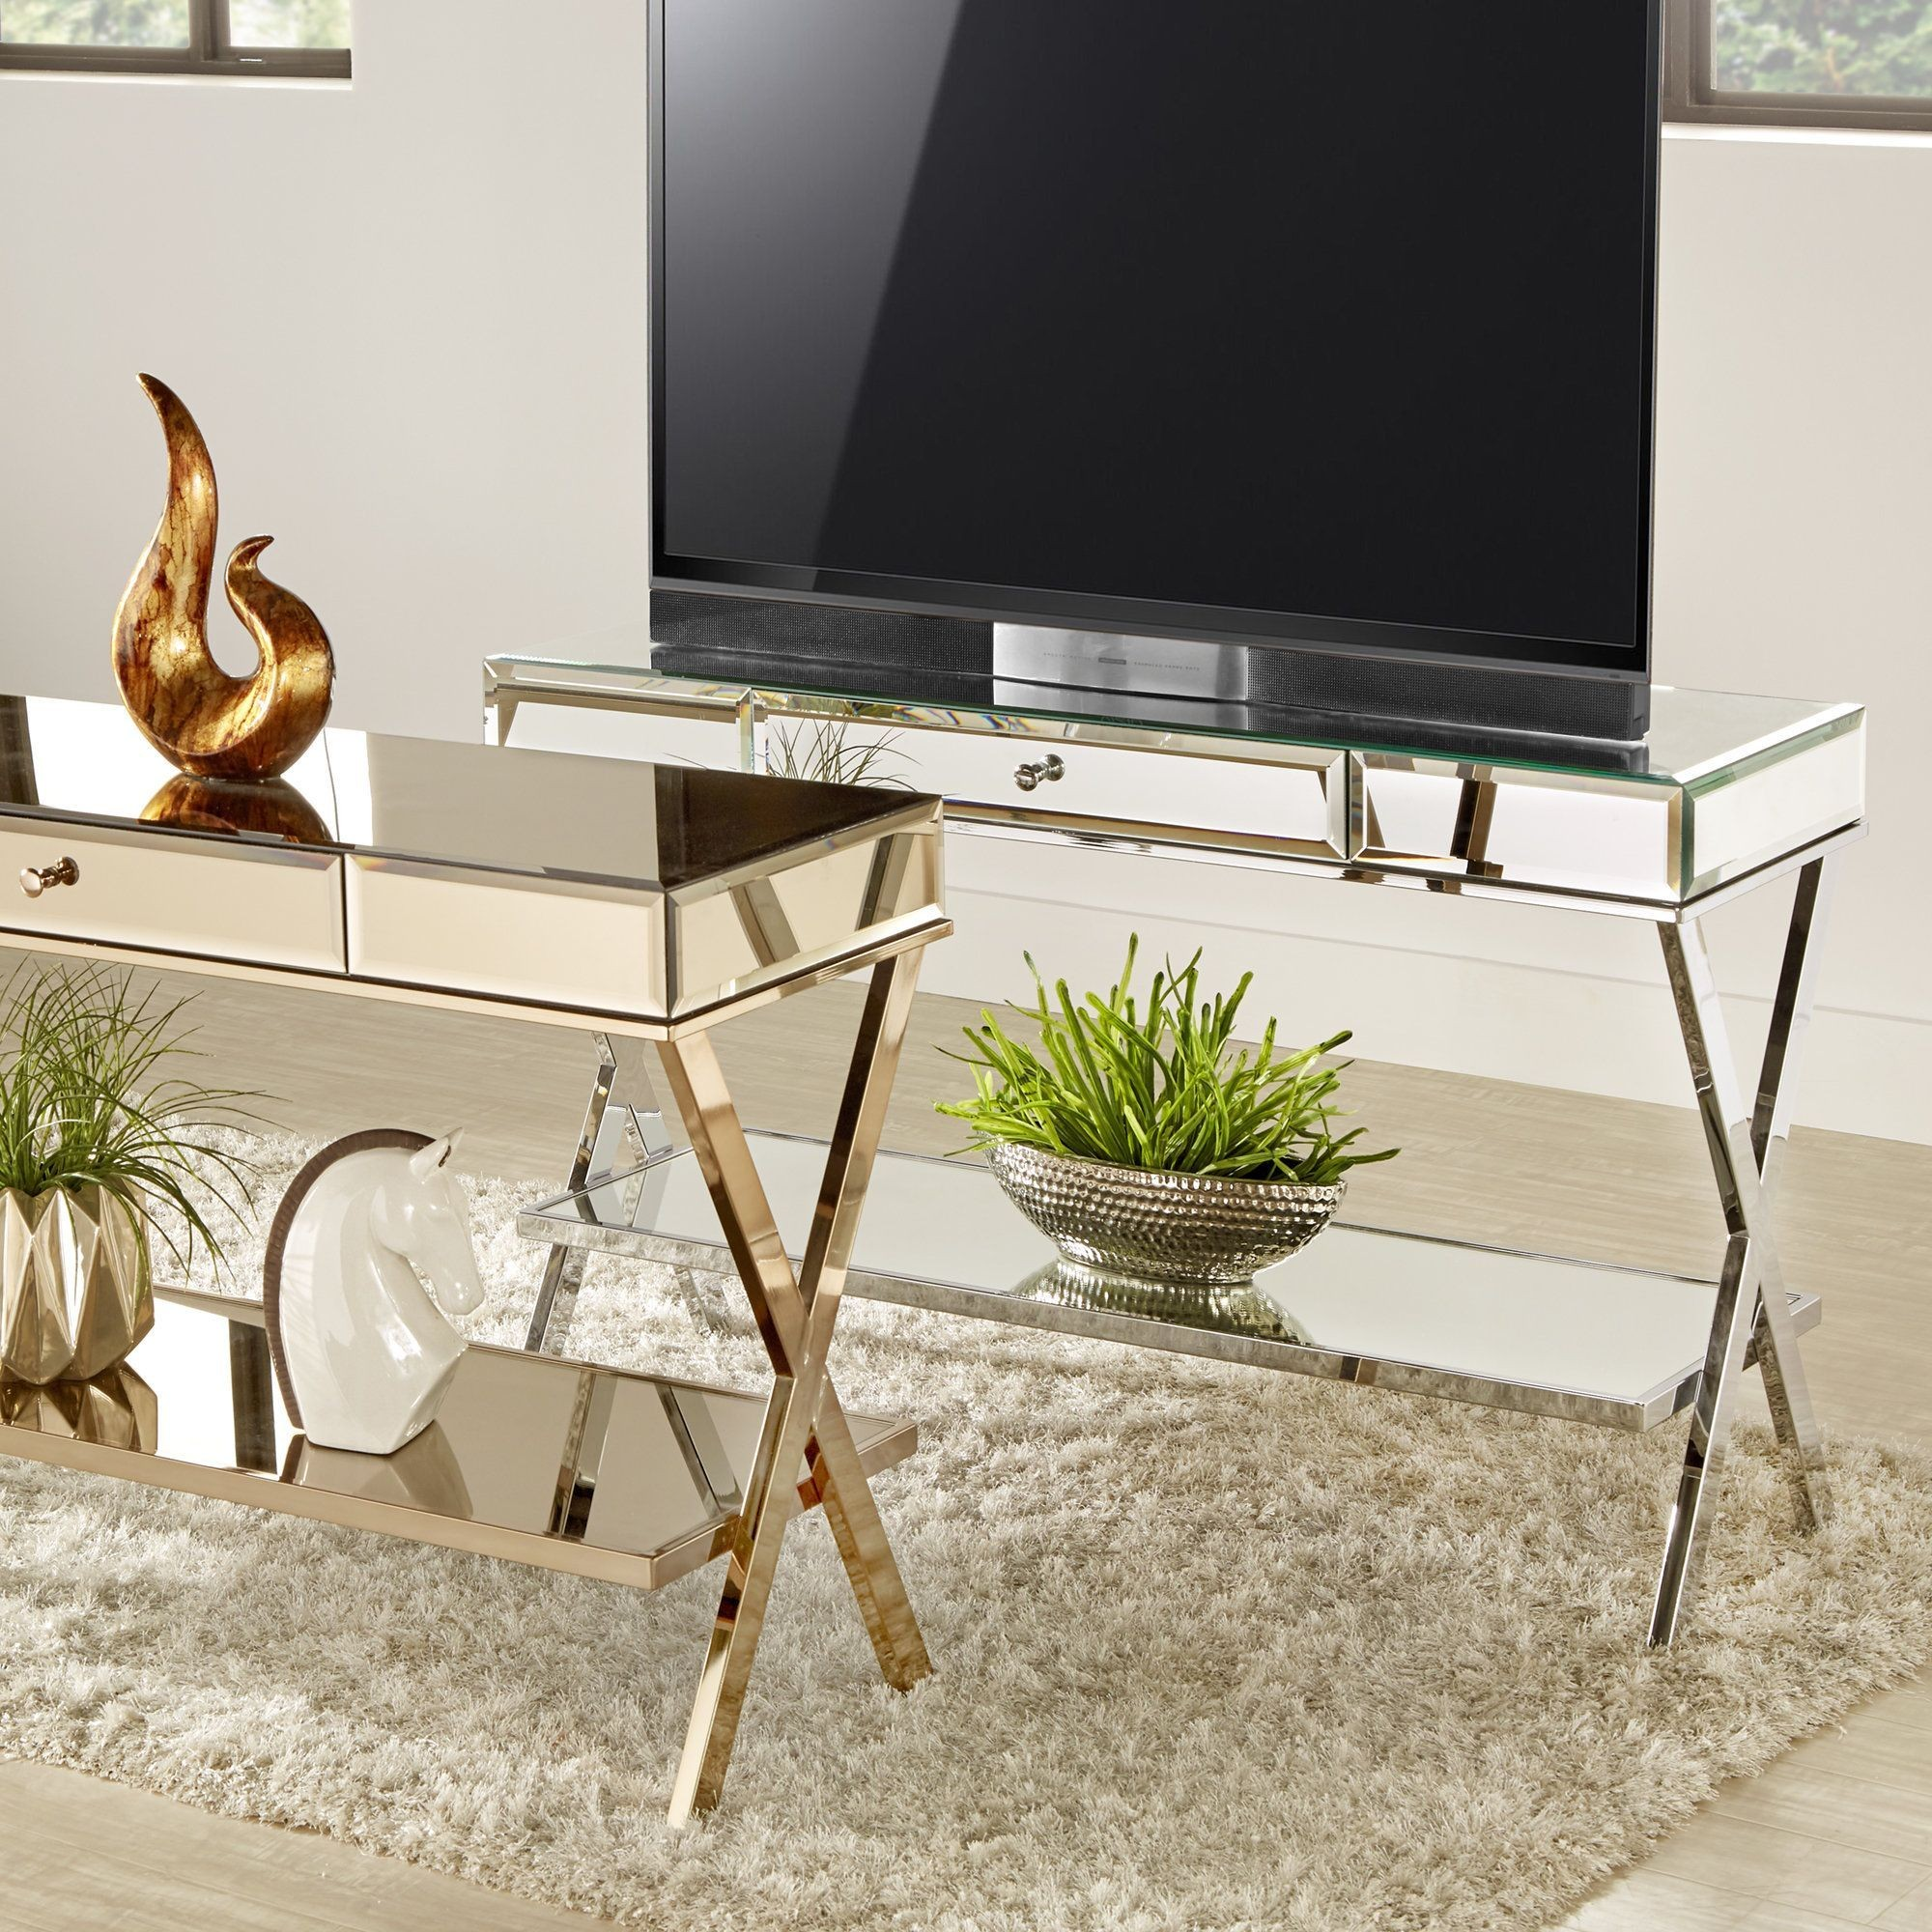 mirrored accent table inspirational omni base stand with drawer inspire chrome bar top height tall glass lamp tables white end storage hampton bay wicker patio set room essentials